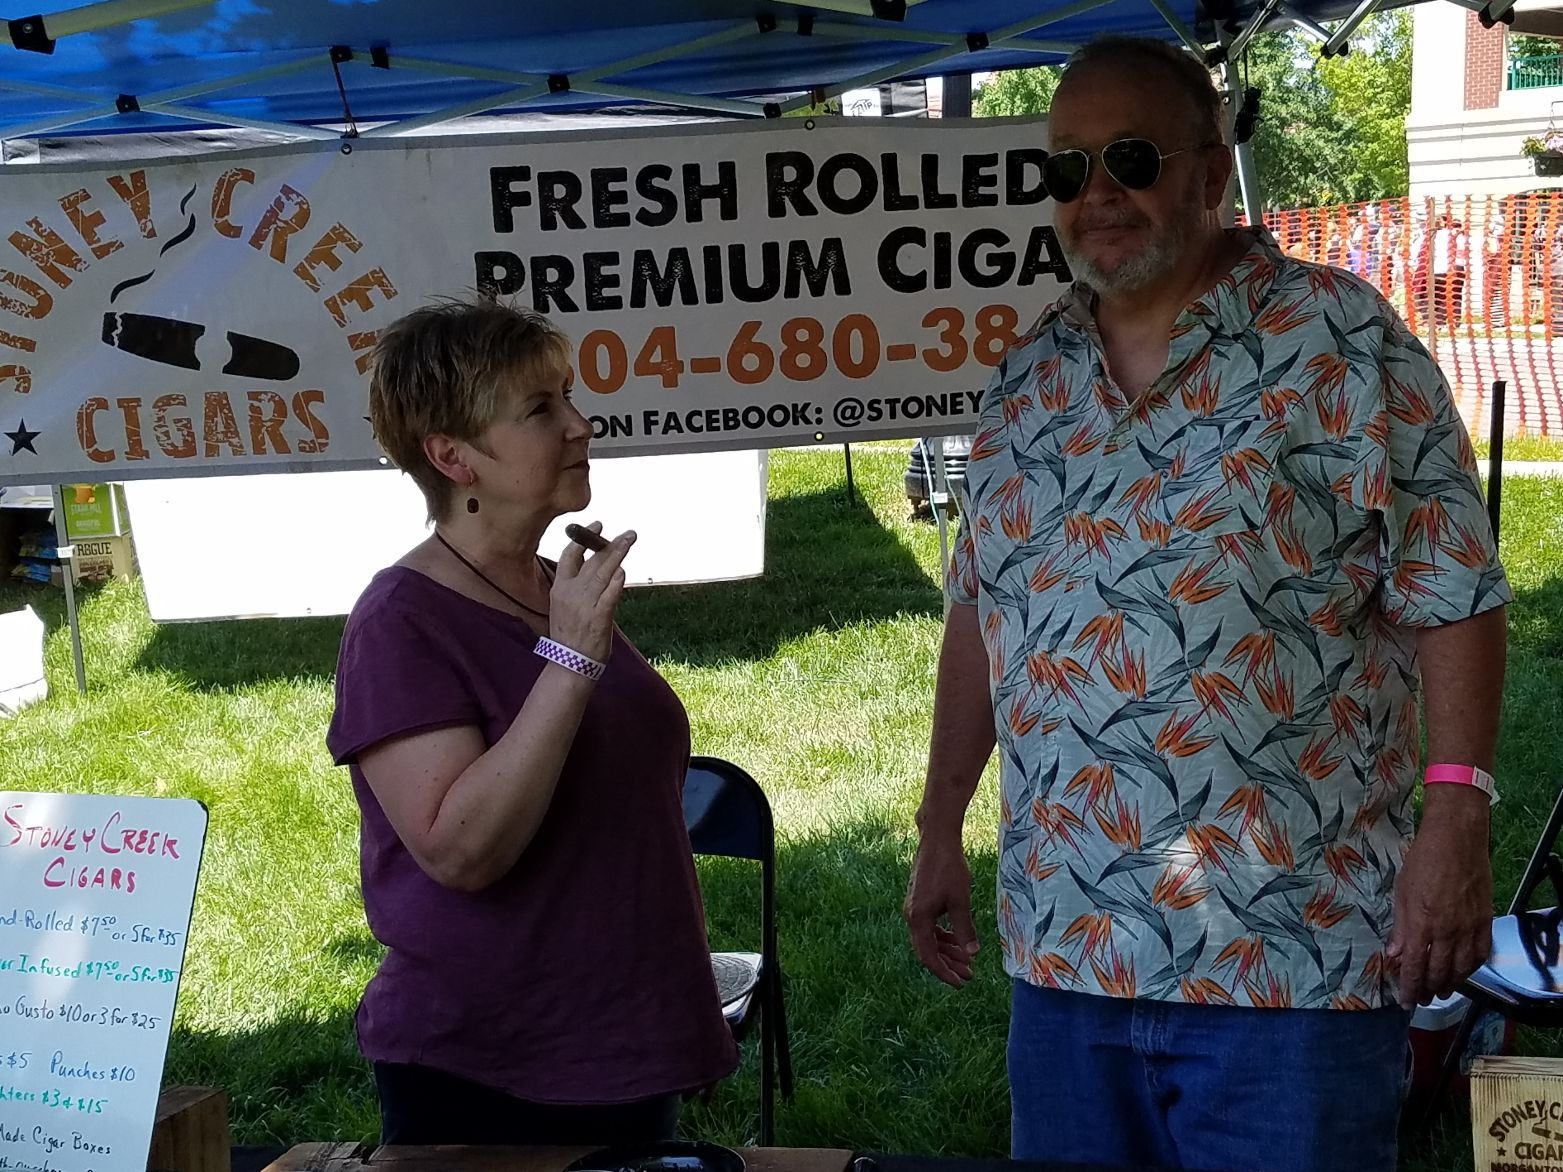 Stoney Creek Cigars PA is Jeff and Becky Kelly based in York County PA